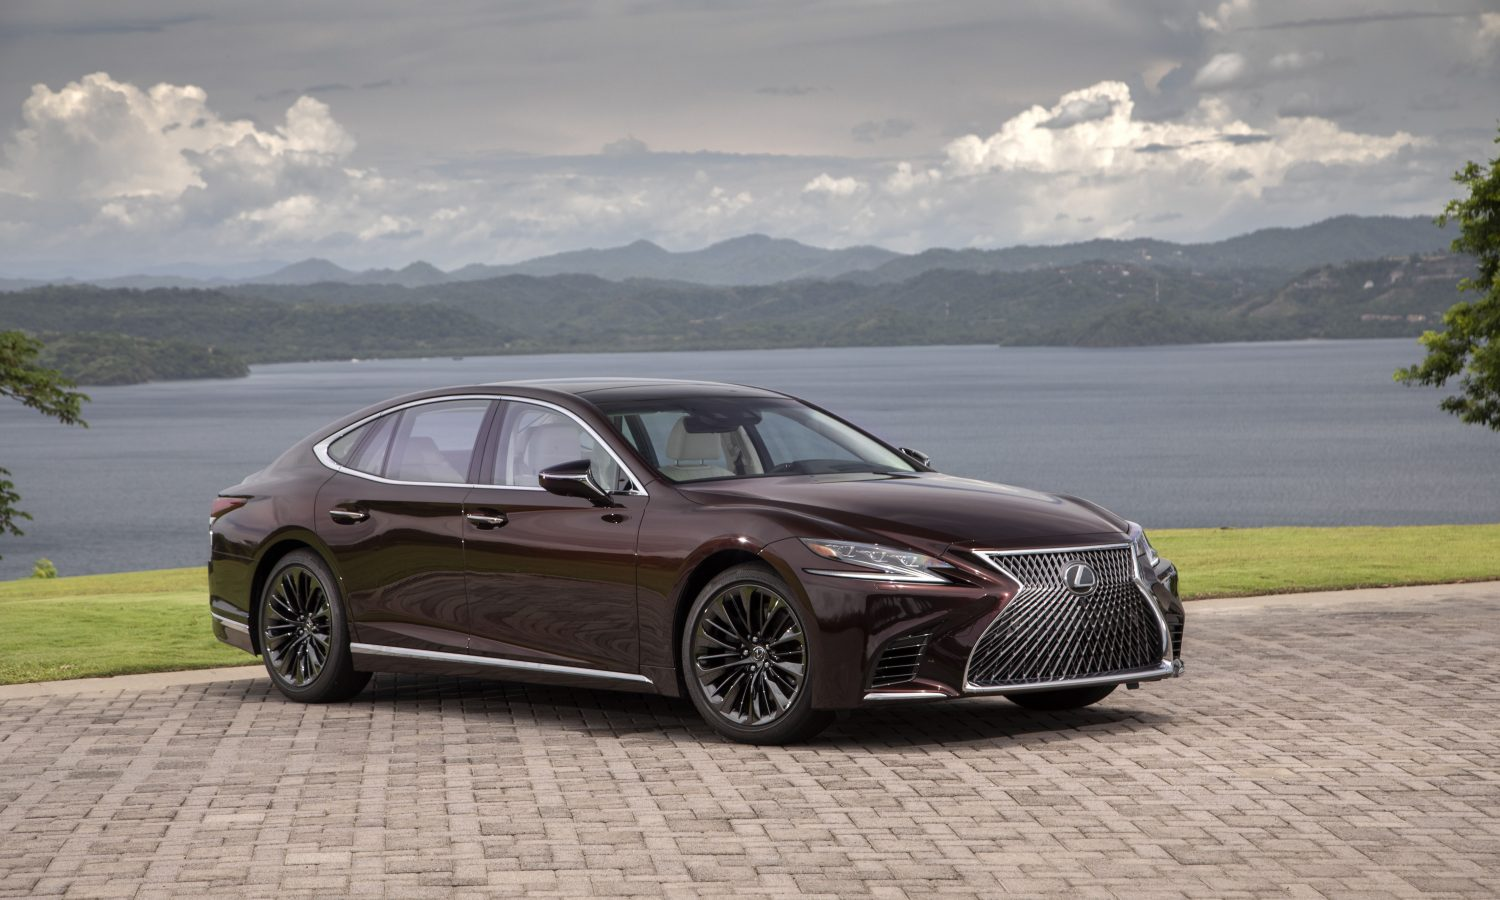 71 Great Lexus Is 2020 Picture for Lexus Is 2020